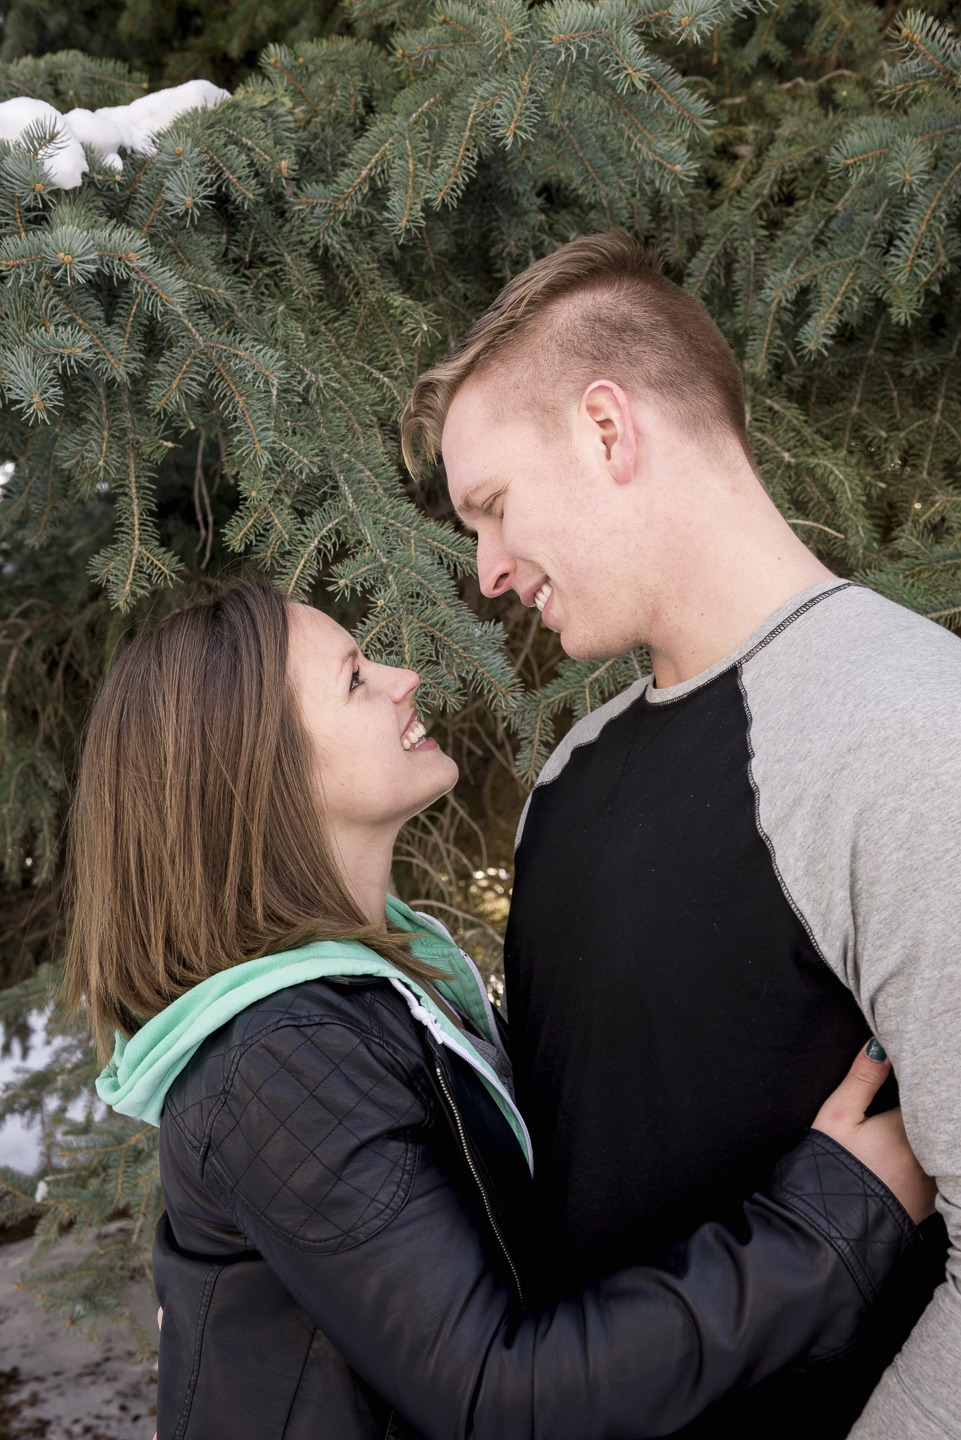 savage_couple_portrait_snow_pine_utah_Christin-4.jpg